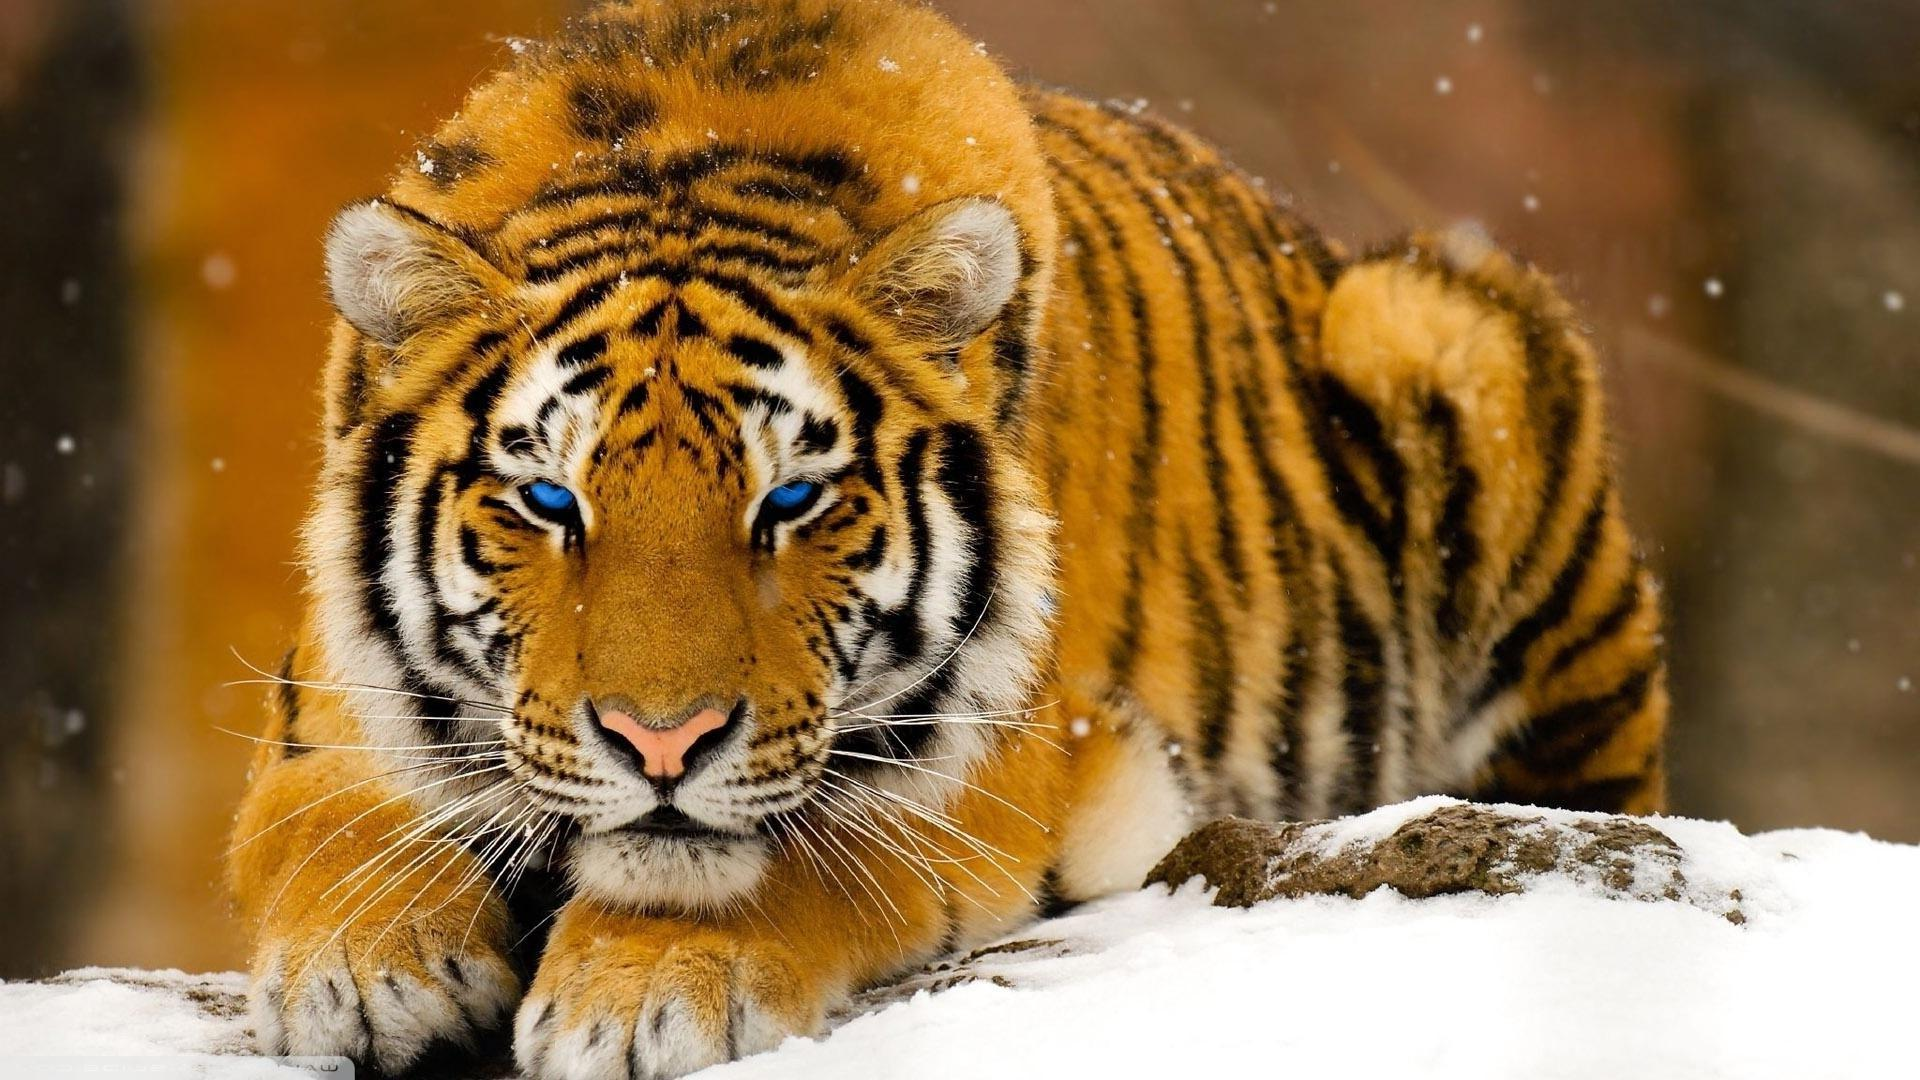 Tiger HD Wallpapers and Backgrounds sorted by date